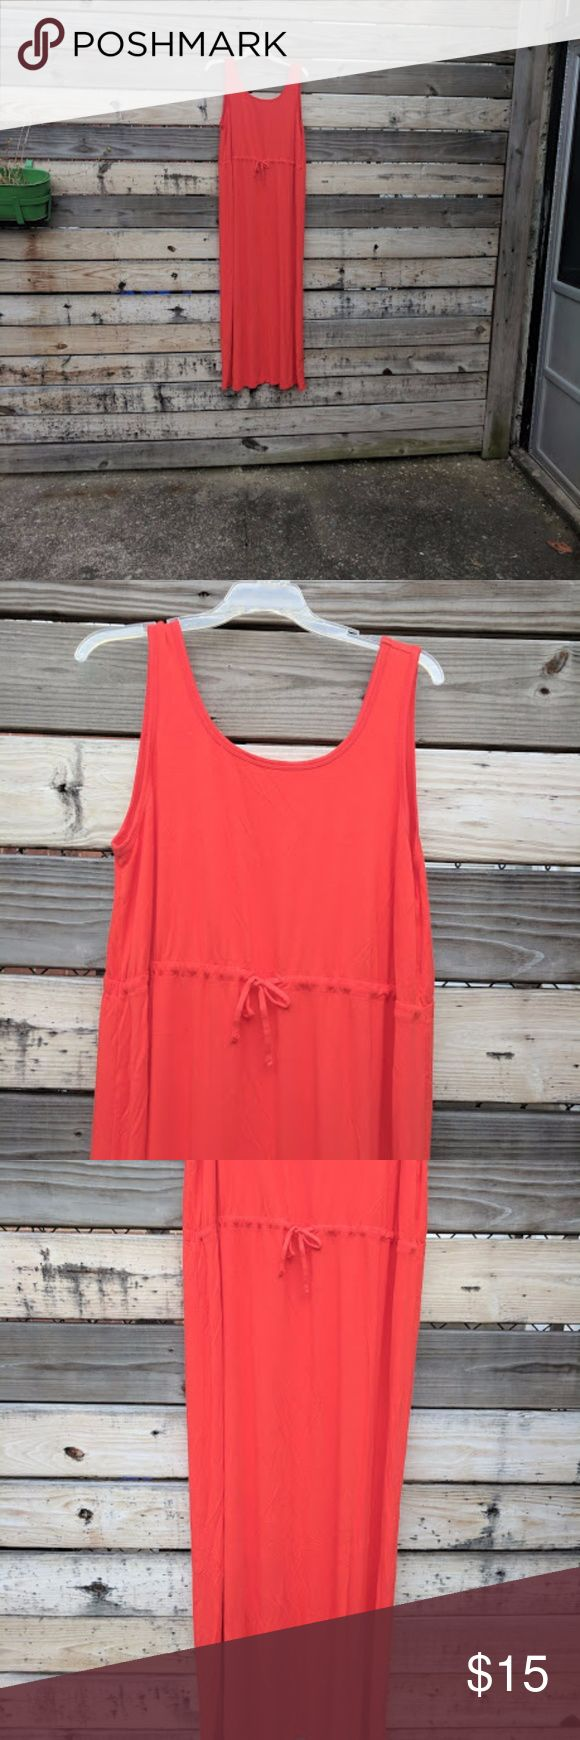 NWOT Old Navy Red Maxi Dress Size 1X Solid red tank maxi dress with a drawstring waist. Never worn or washed. Old Navy Dresses Maxi